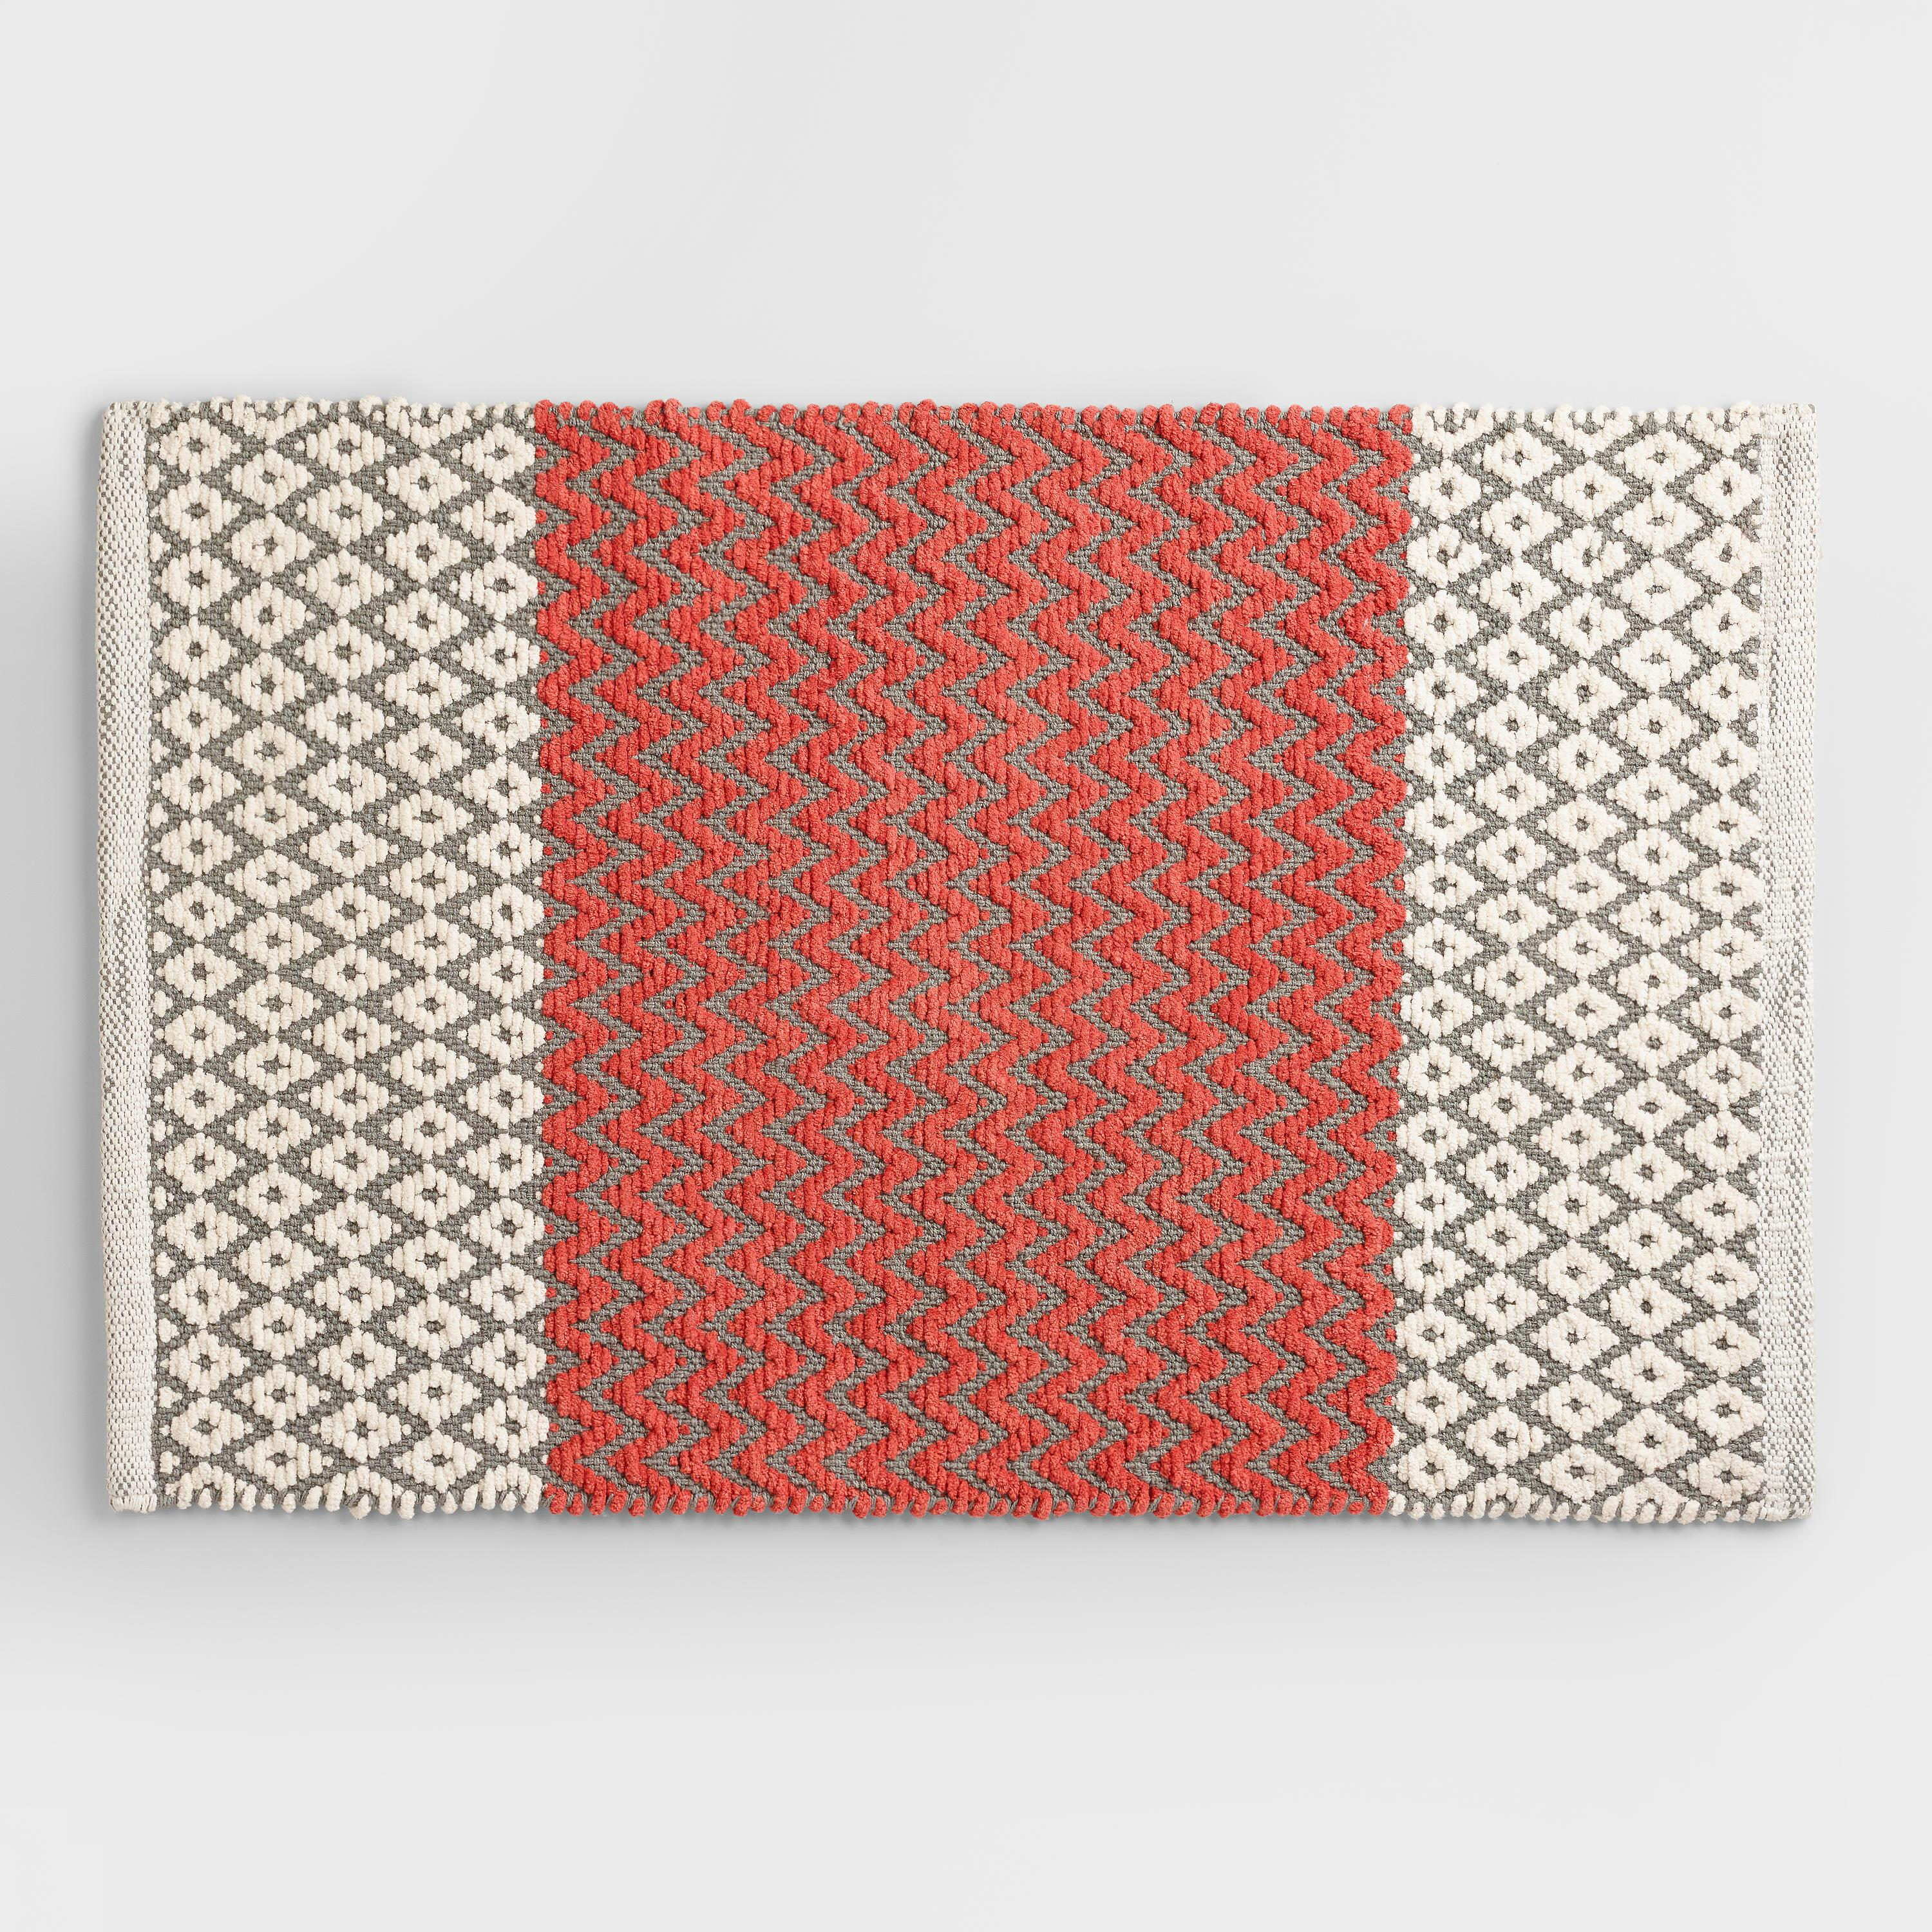 coral and frost gray chenille diamond bath mat red cotton by world market ebay. Black Bedroom Furniture Sets. Home Design Ideas